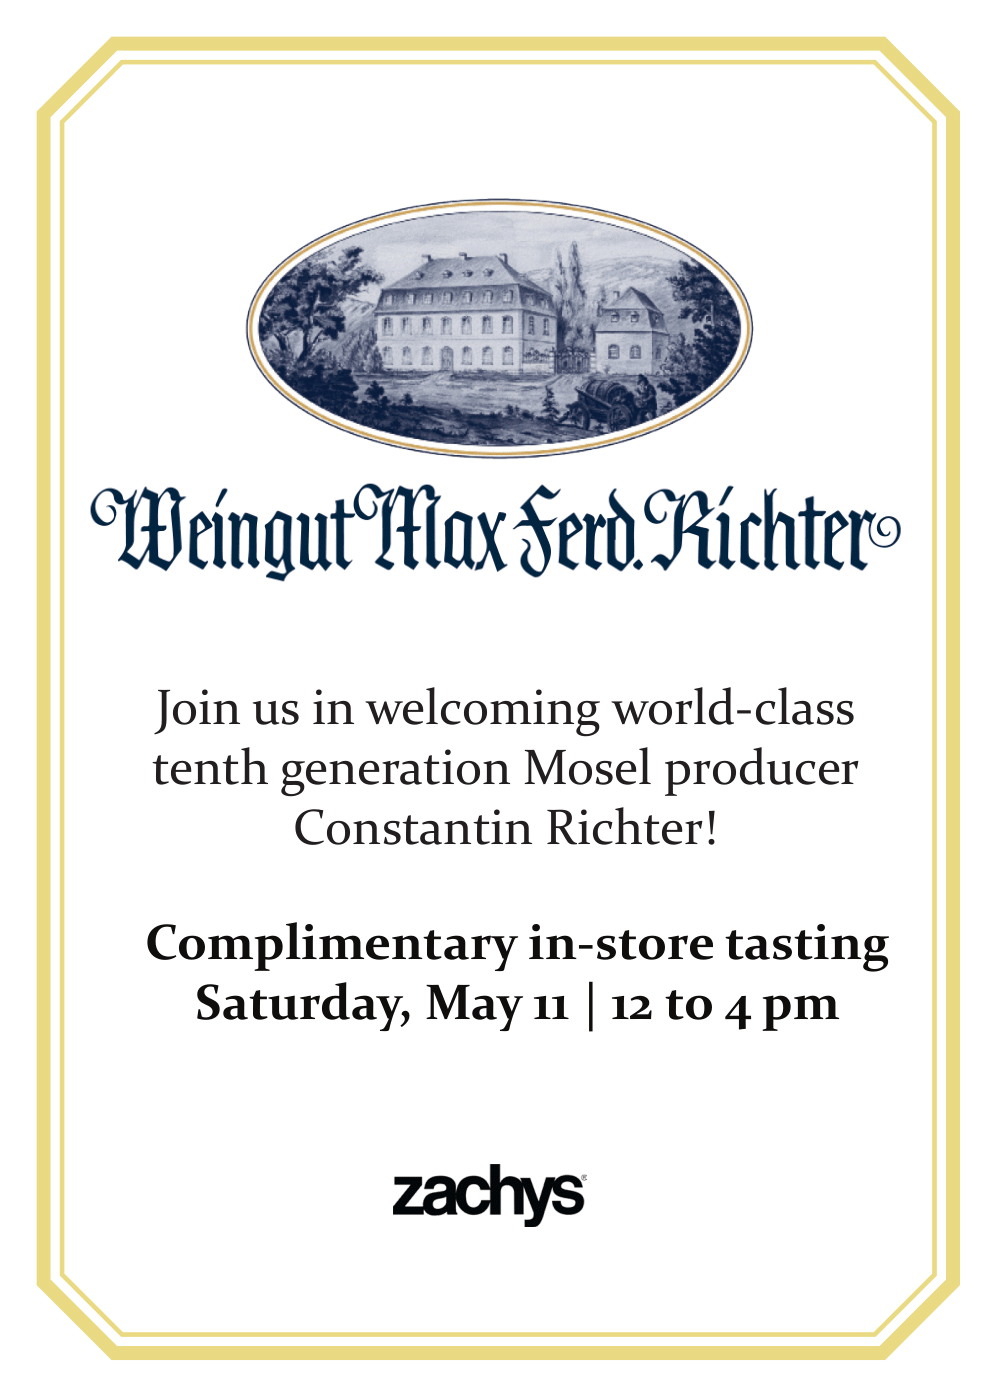 Richter Riesling's tasting event 5x7 face-plate poster, yellow double border